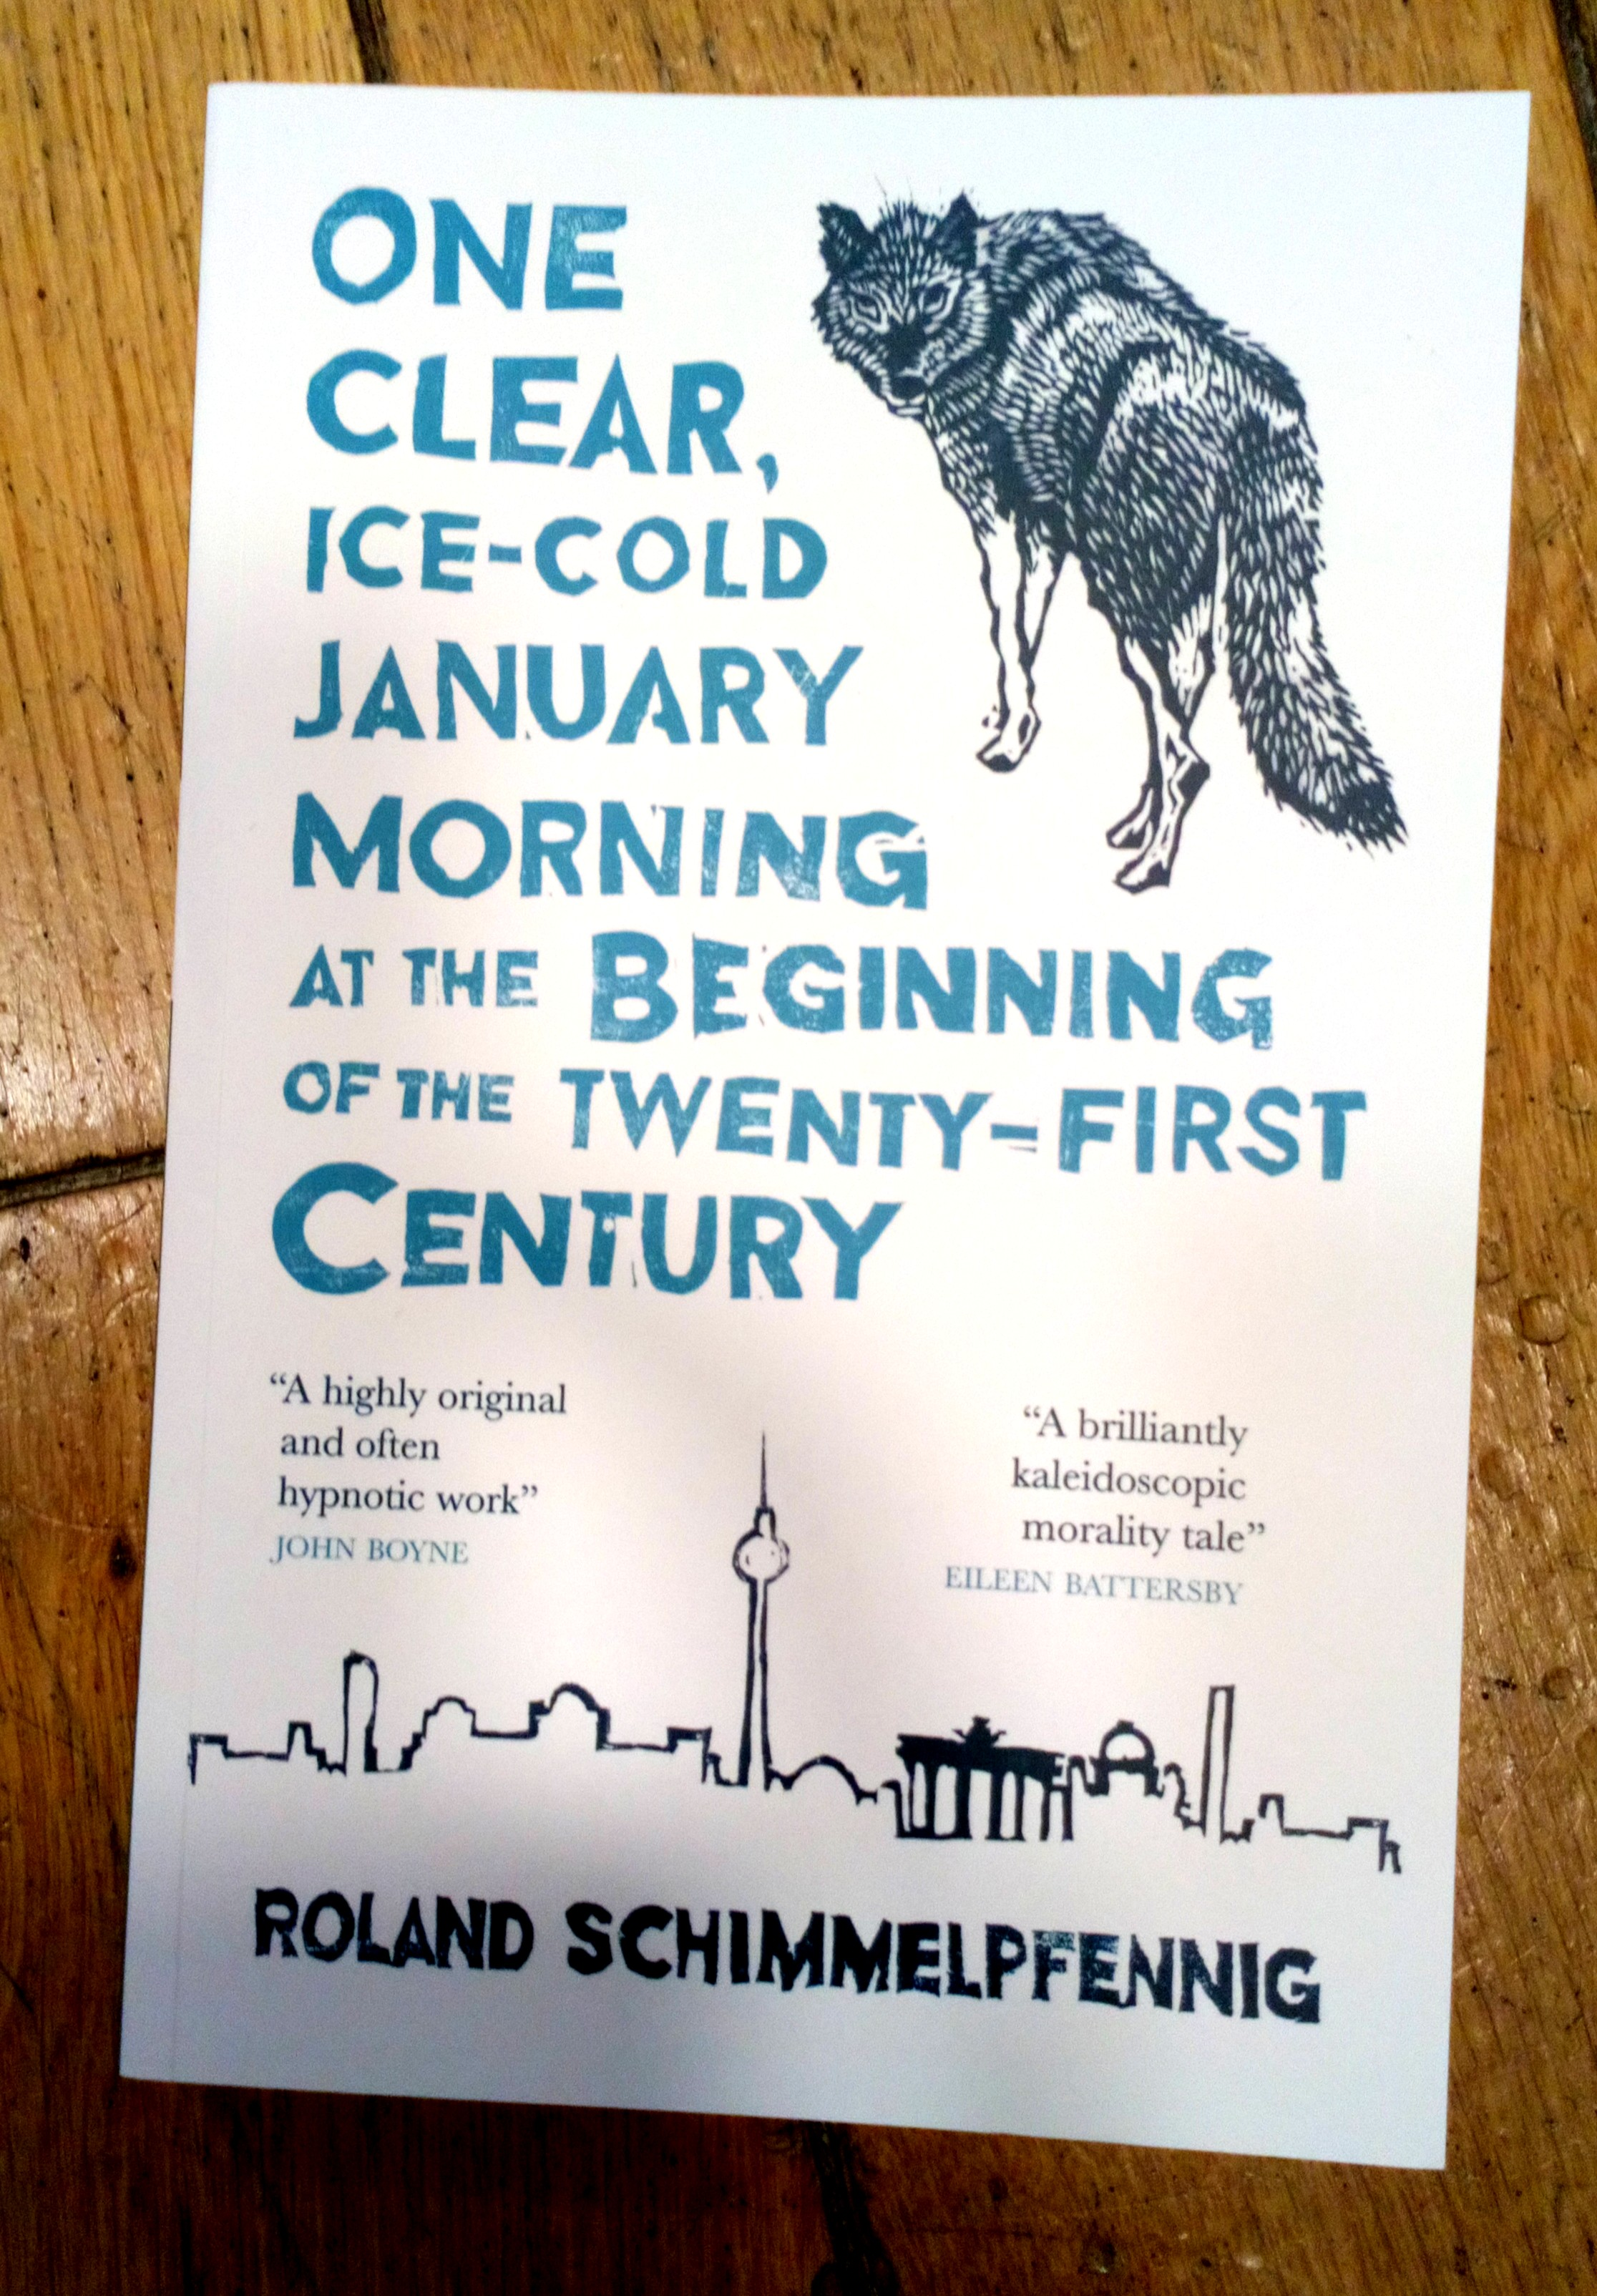 Image of Reading Group – One Clear Ice-cold January Morning at the Beginning of the 21st Century